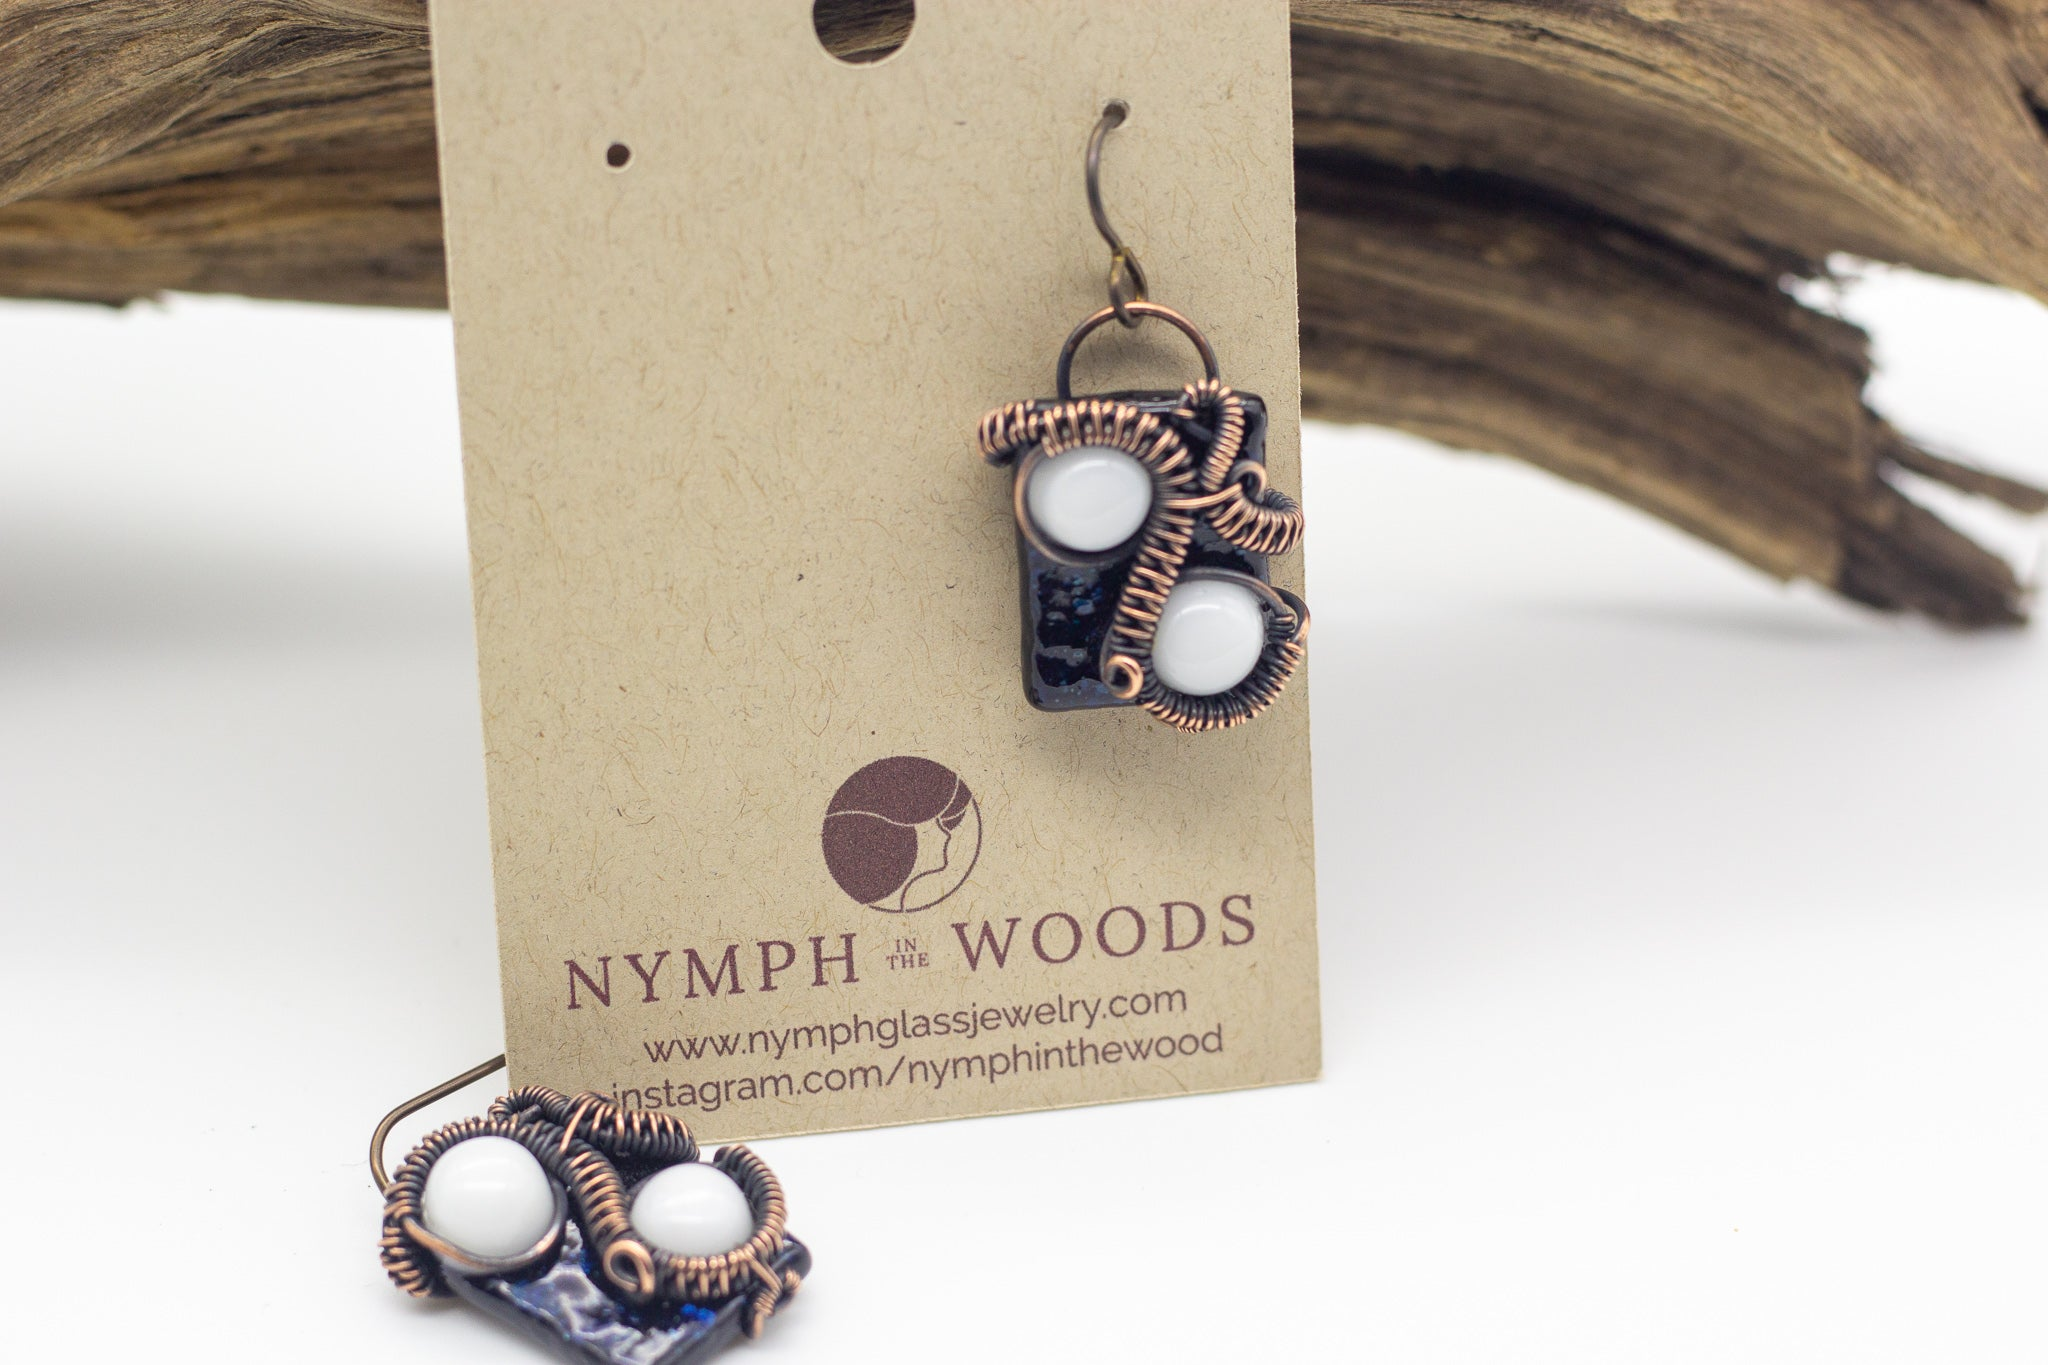 handmade white and dark blue fused glass earrings with copper wire wrapping from Nymph in the Woods